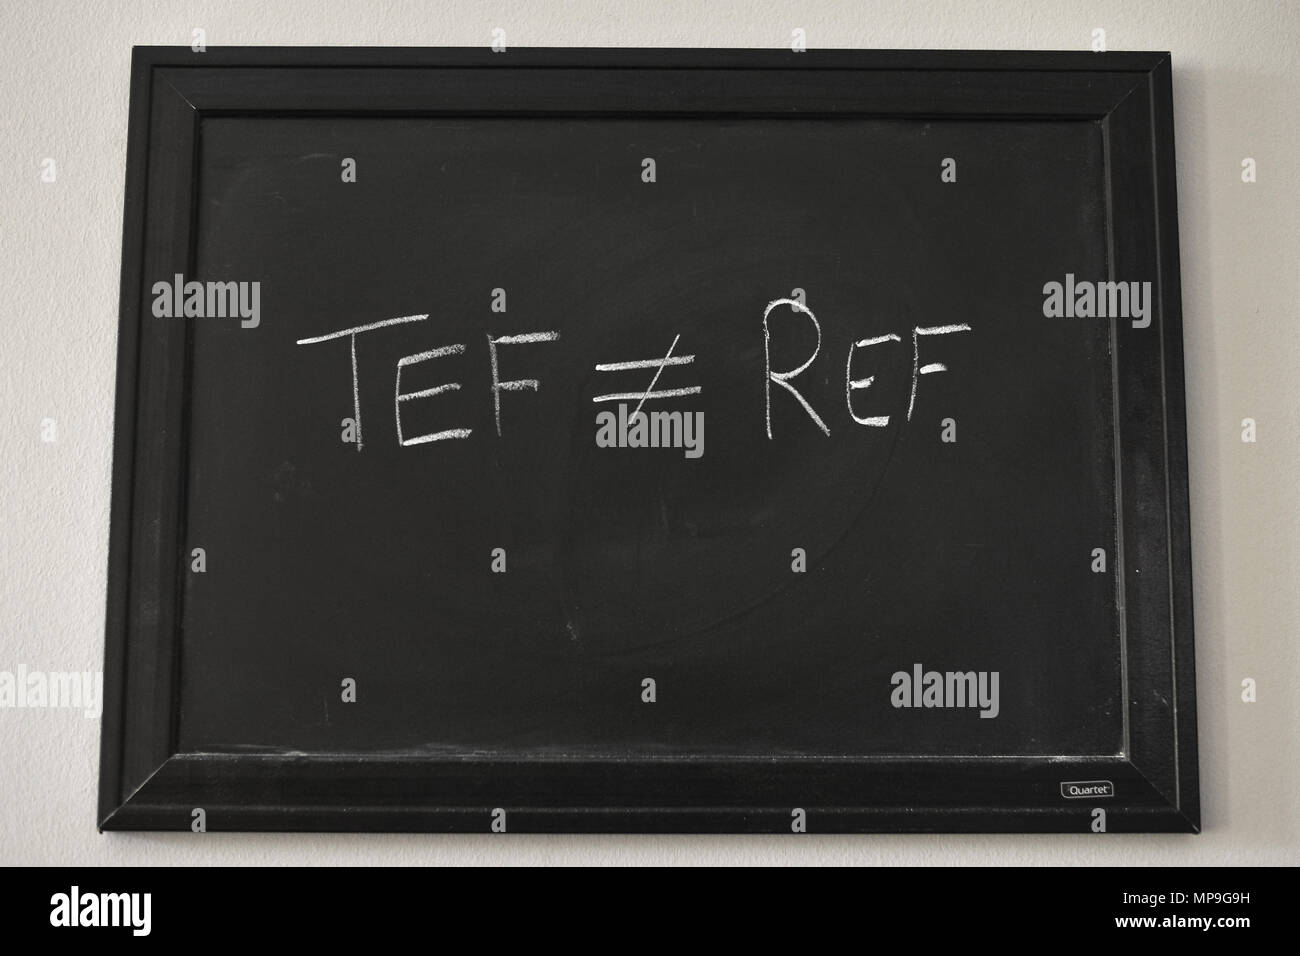 TEF ≠ REF written in white chalk on a black board mounted on a wall. - Stock Image